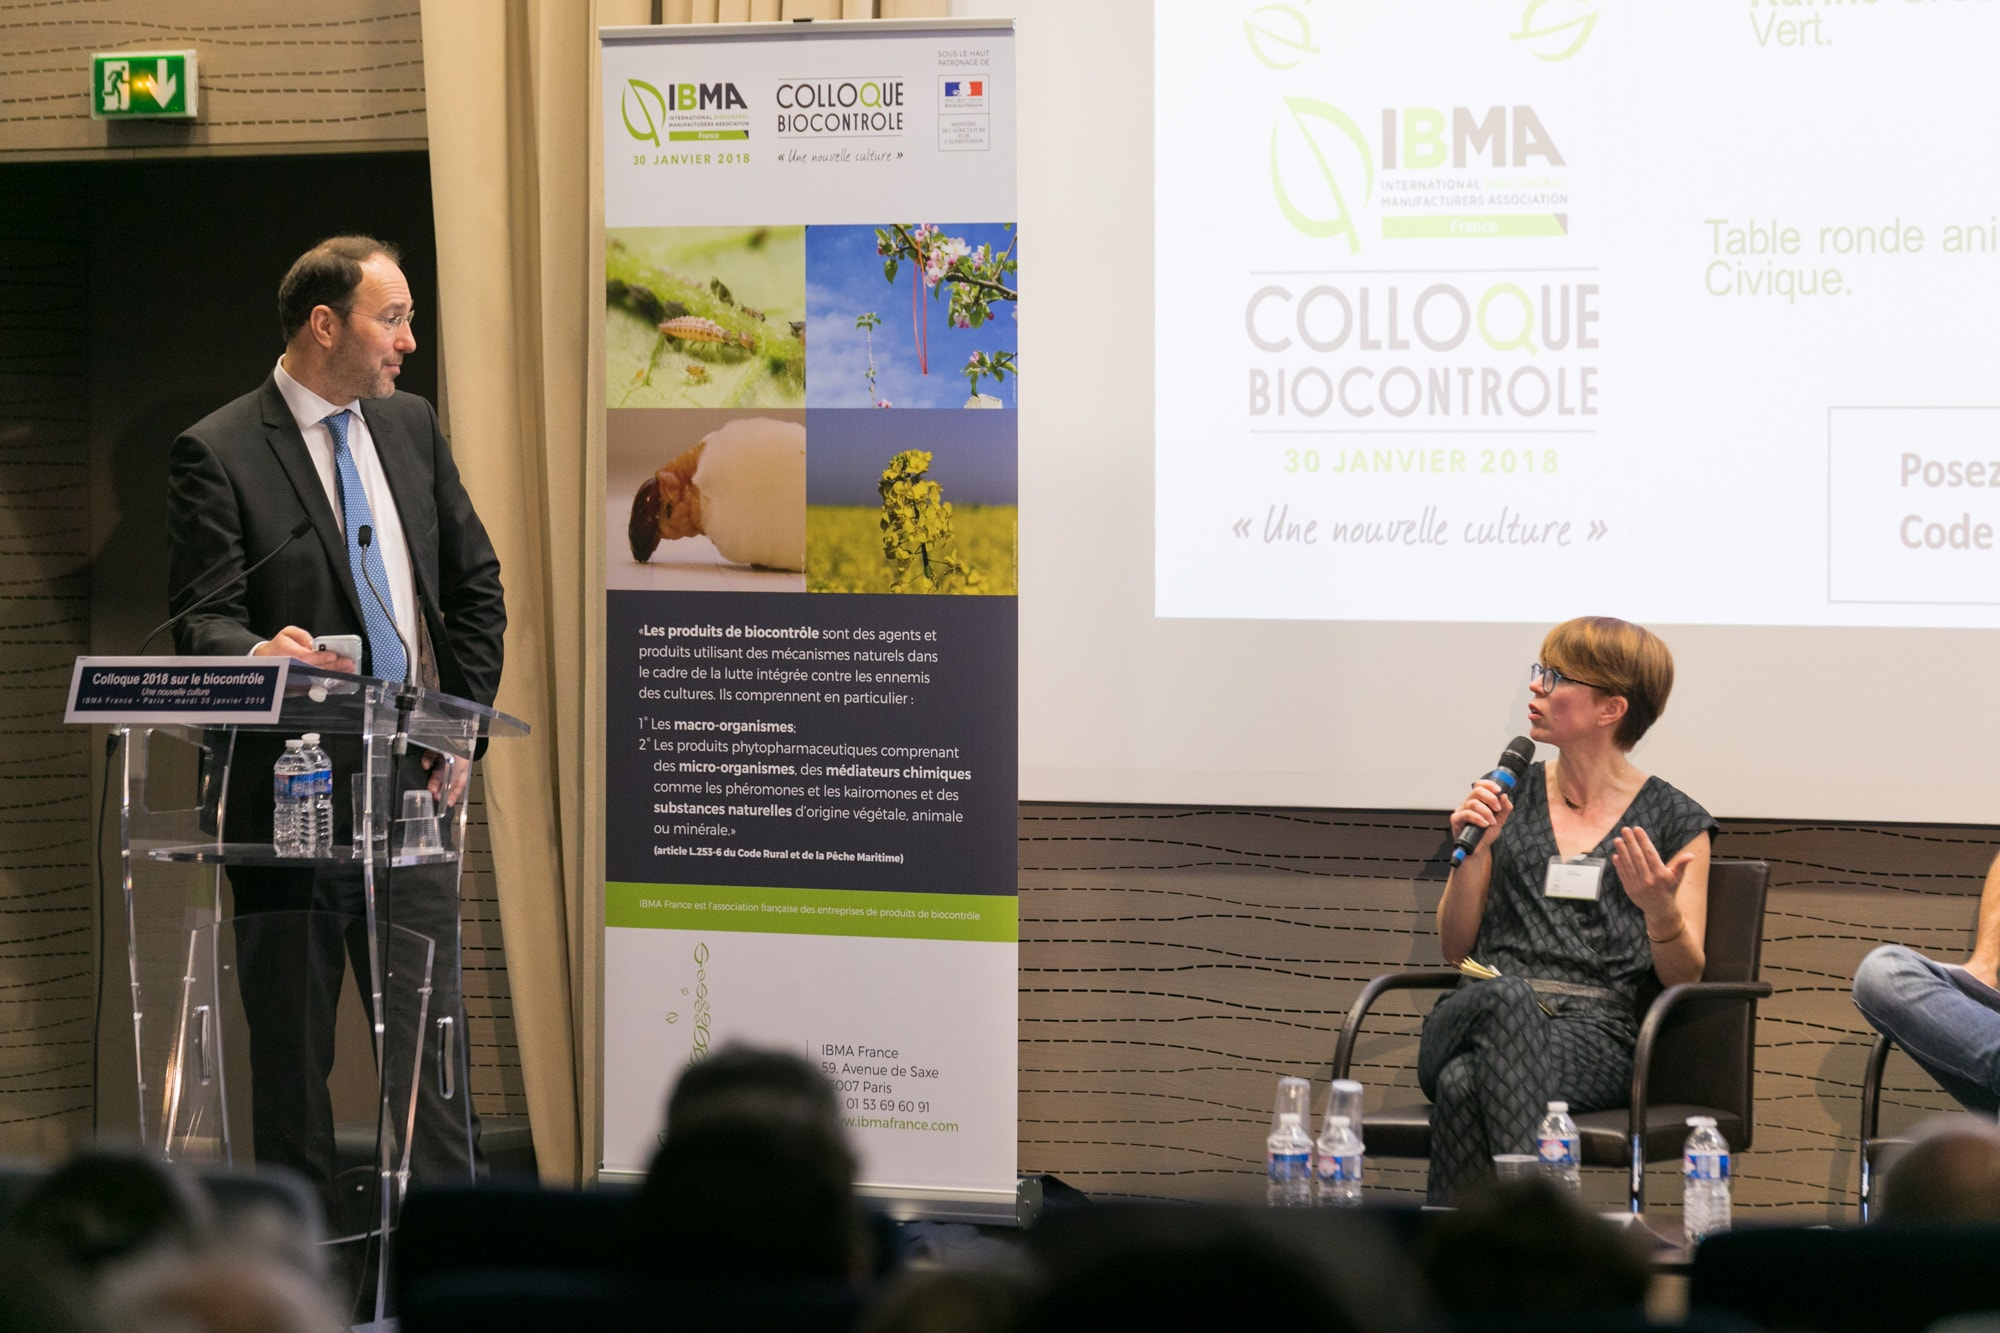 ibma-colloque-2018_42-min